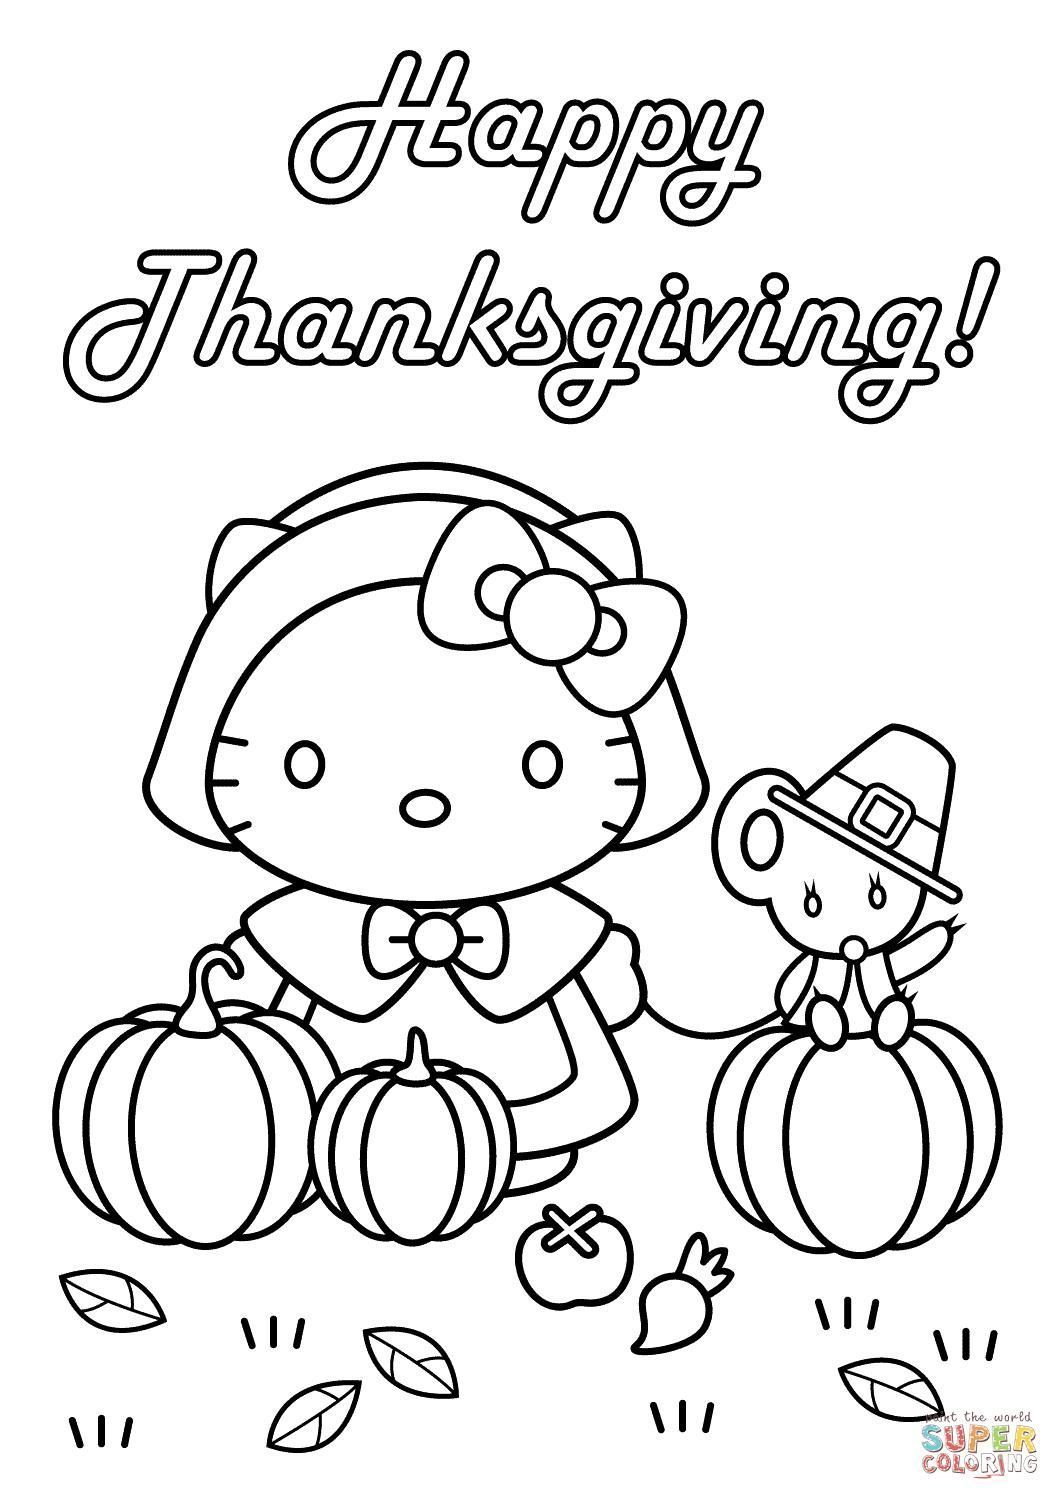 Easy Thanksgiving Coloring Pages At Getcolorings